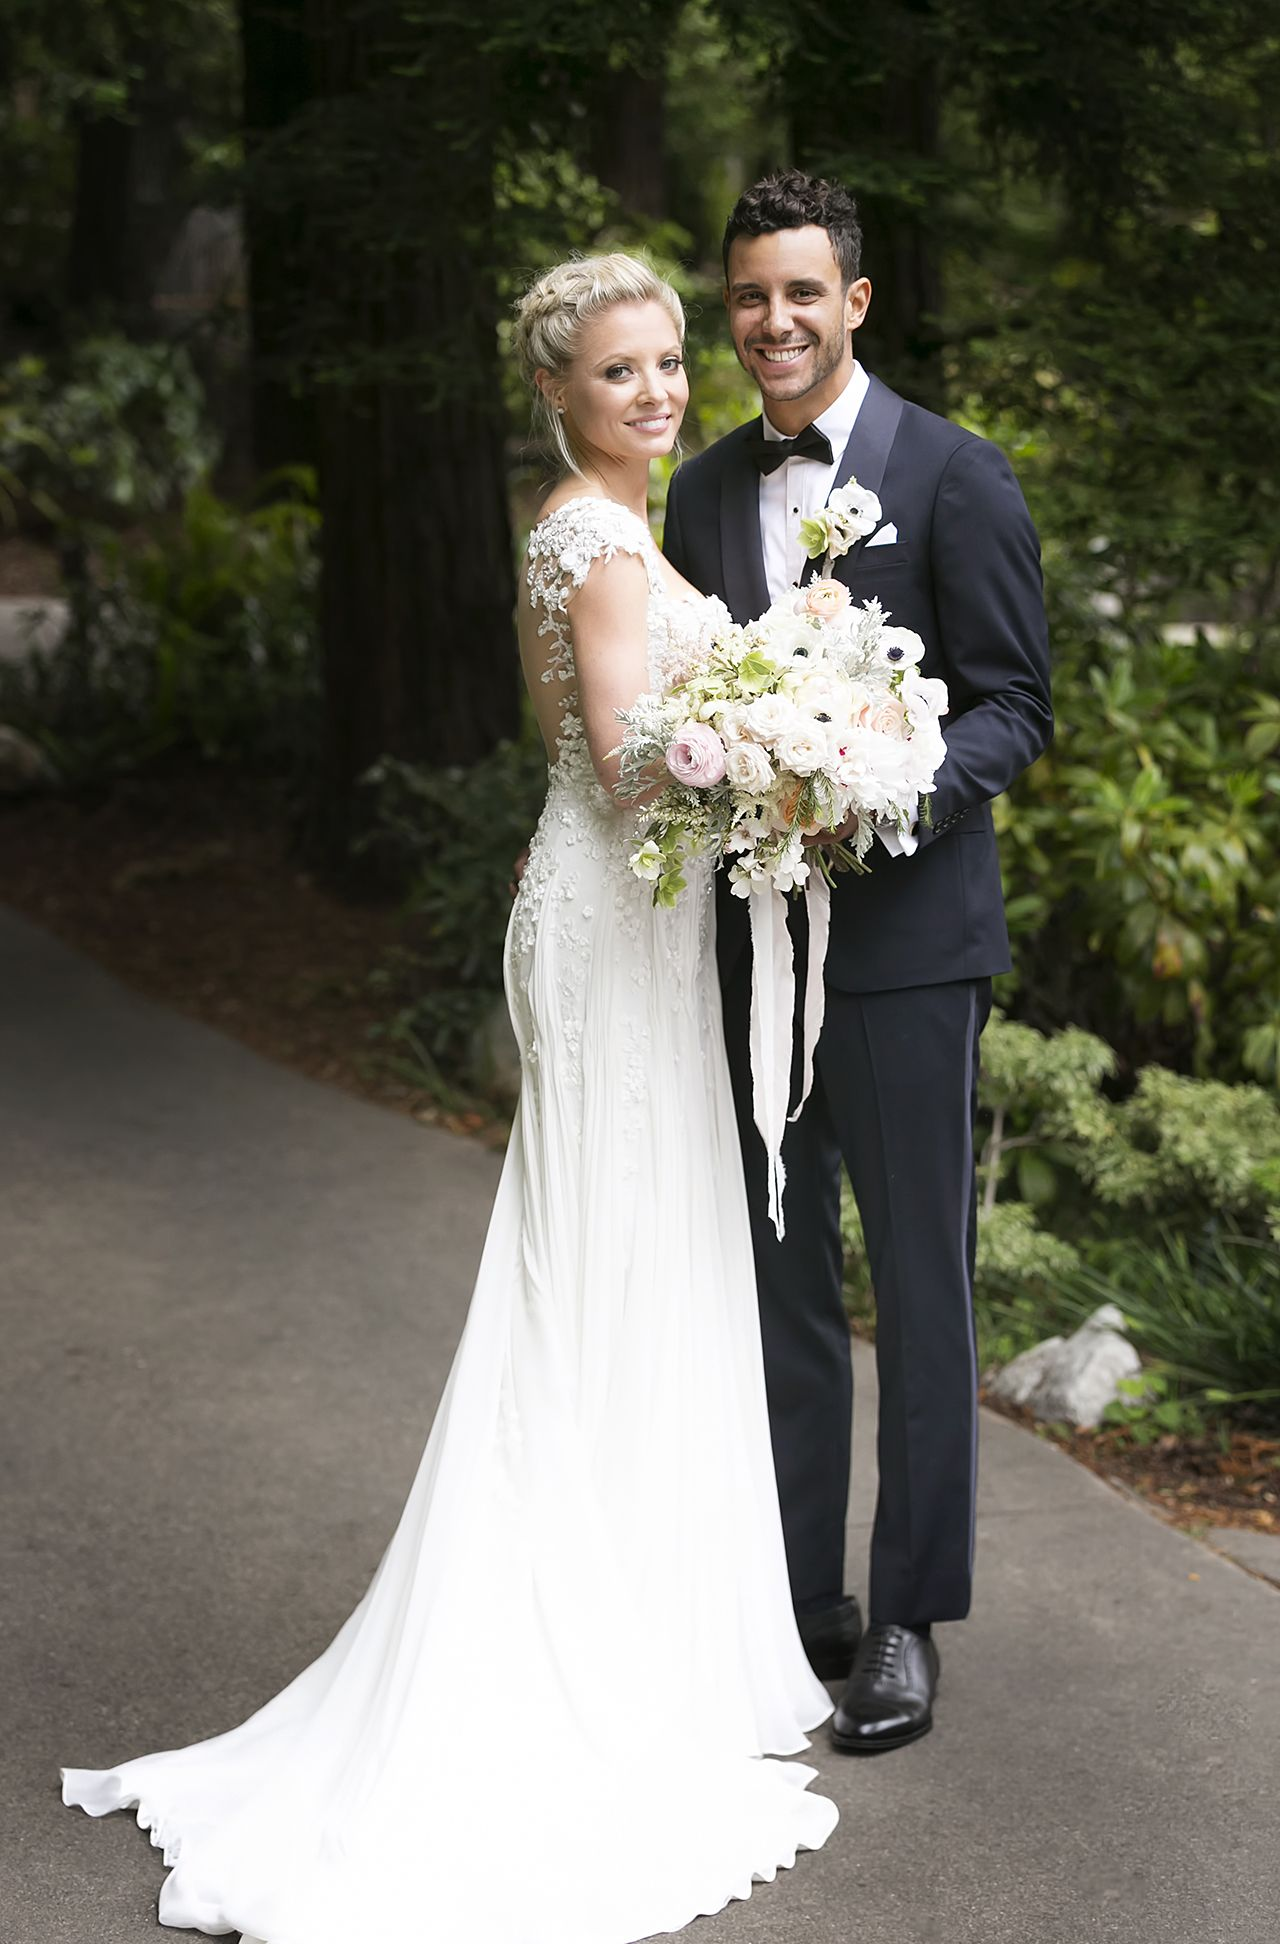 Empire\' Star Kaitlin Doubleday Marries in Stunning Outdoor Wedding ...